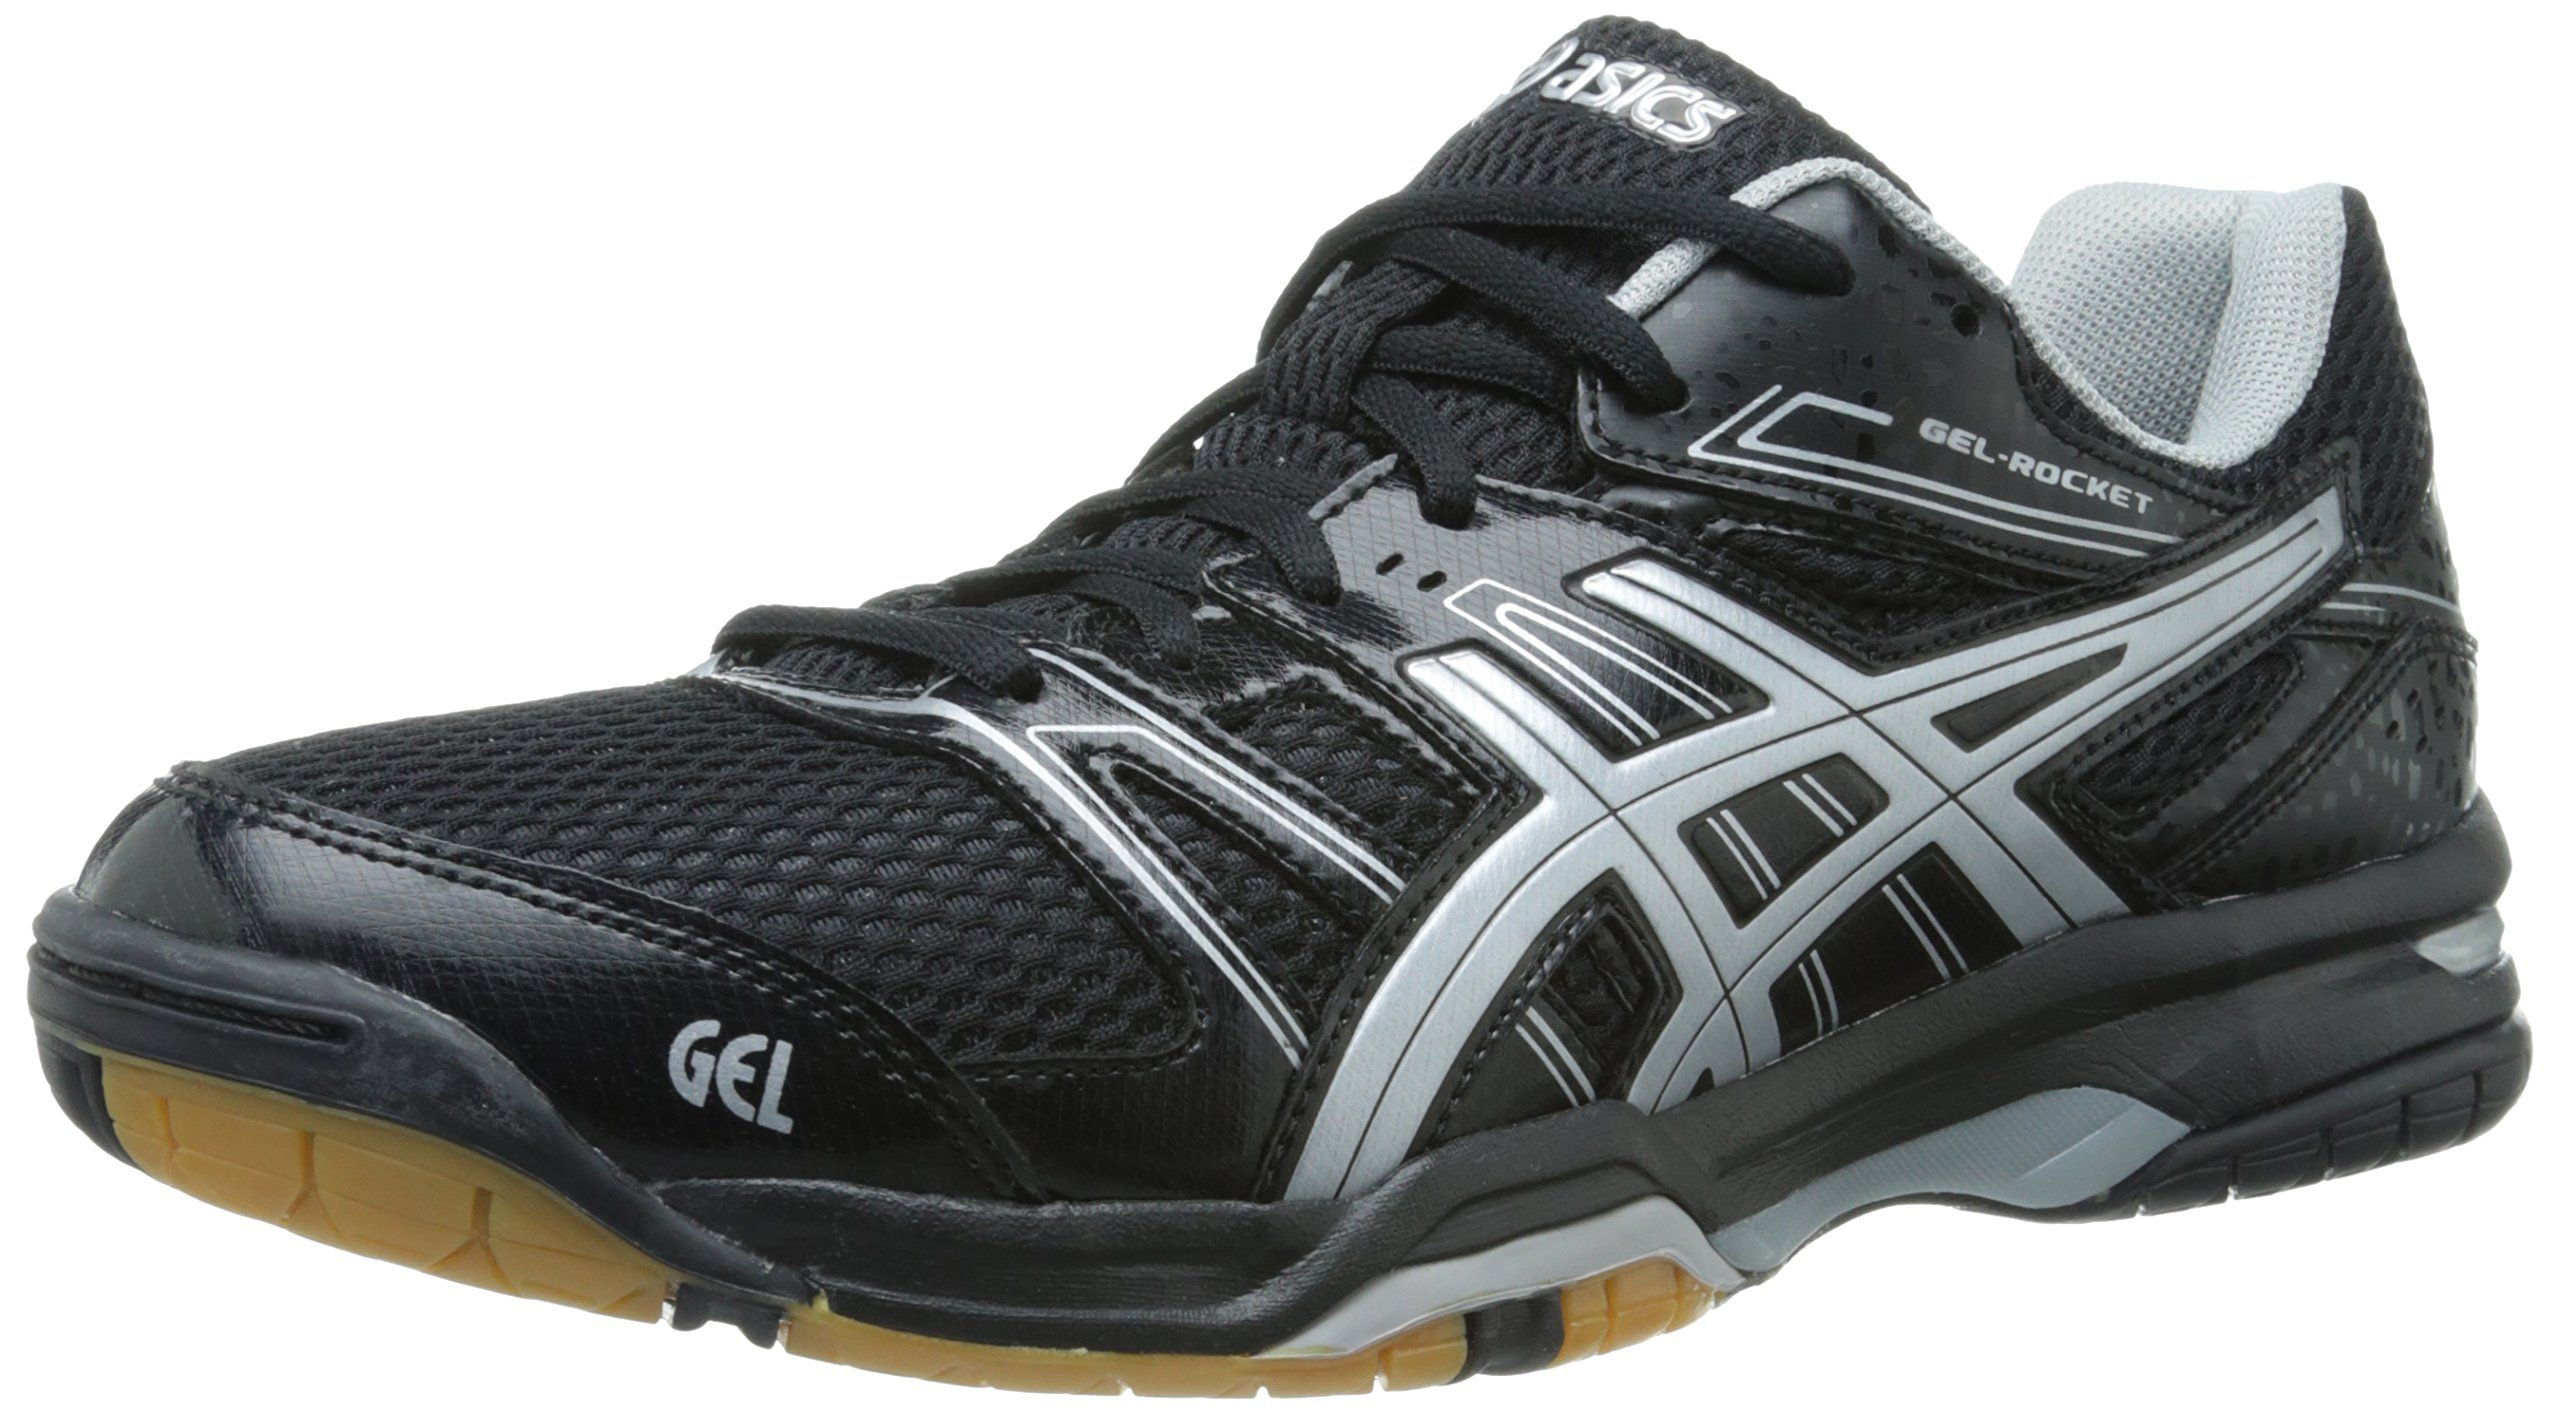 Asics Women S Gel Rocket 7 Volley Ball Shoe Amazon Com Asics Volleyball Shoes Best Volleyball Shoes Asics Women